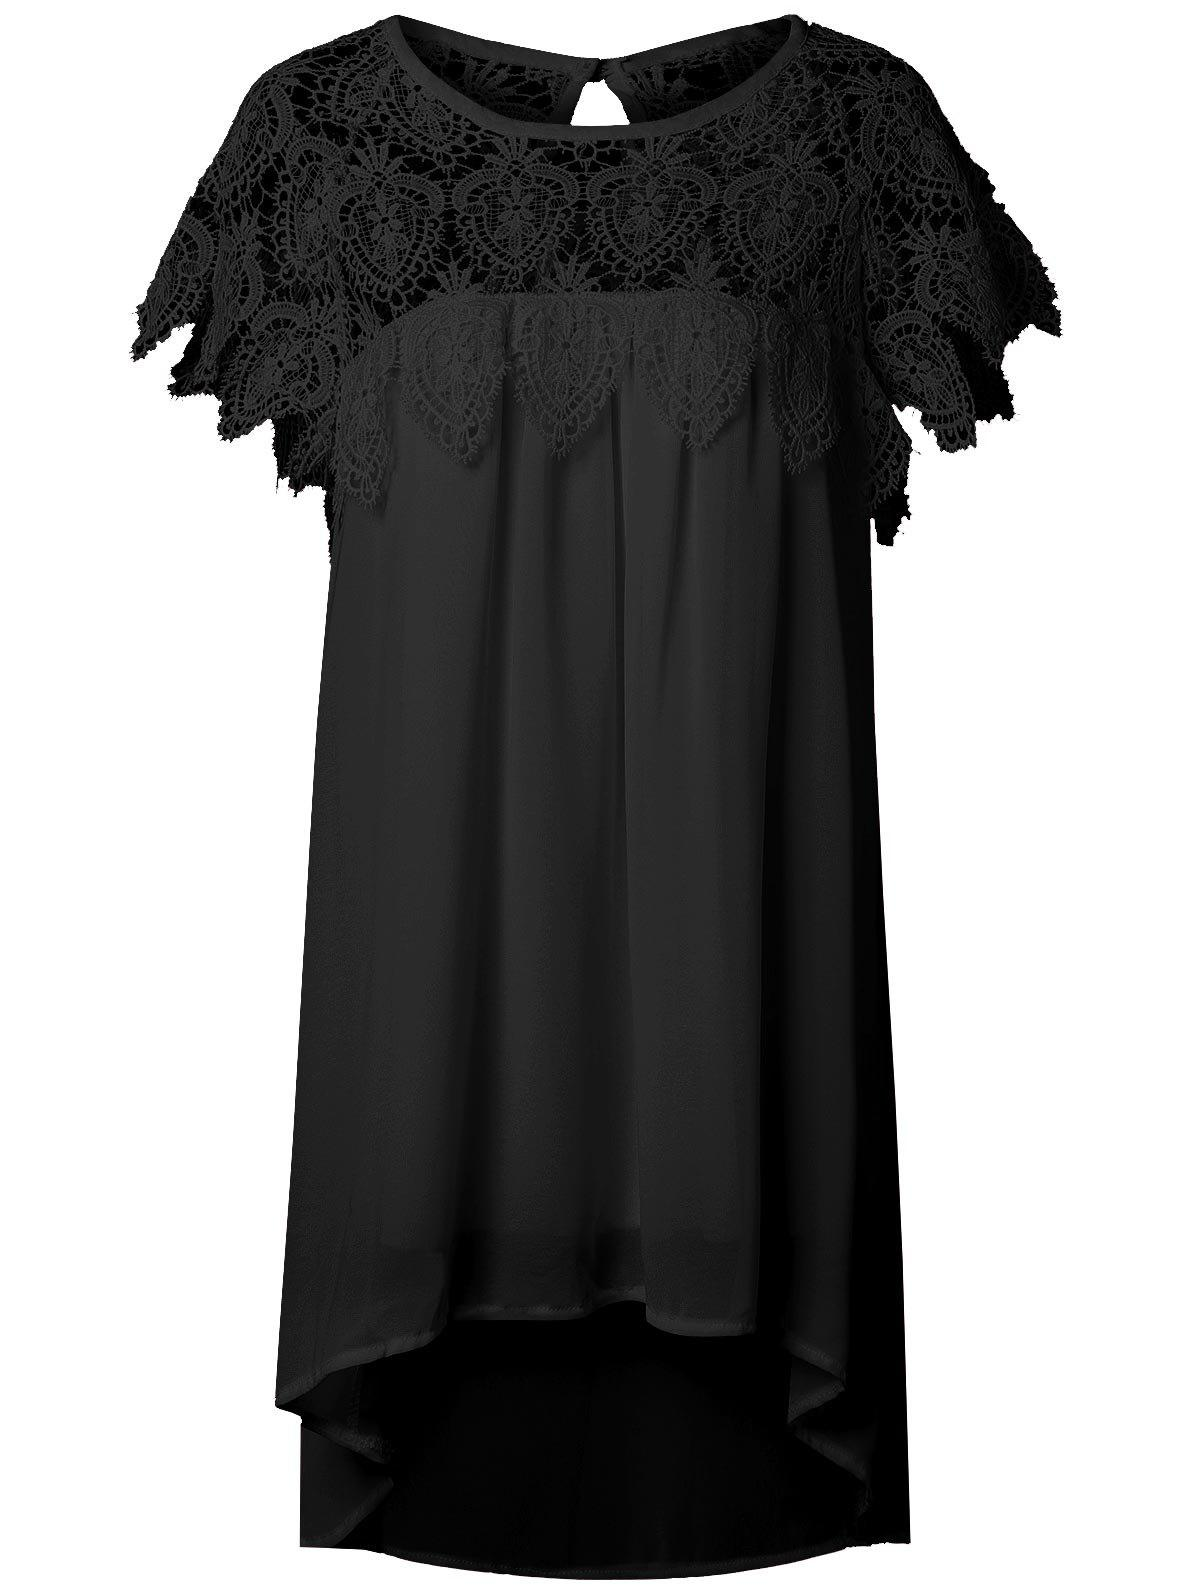 Online Lace Panel Chiffon Tunic Shift Summer Dress